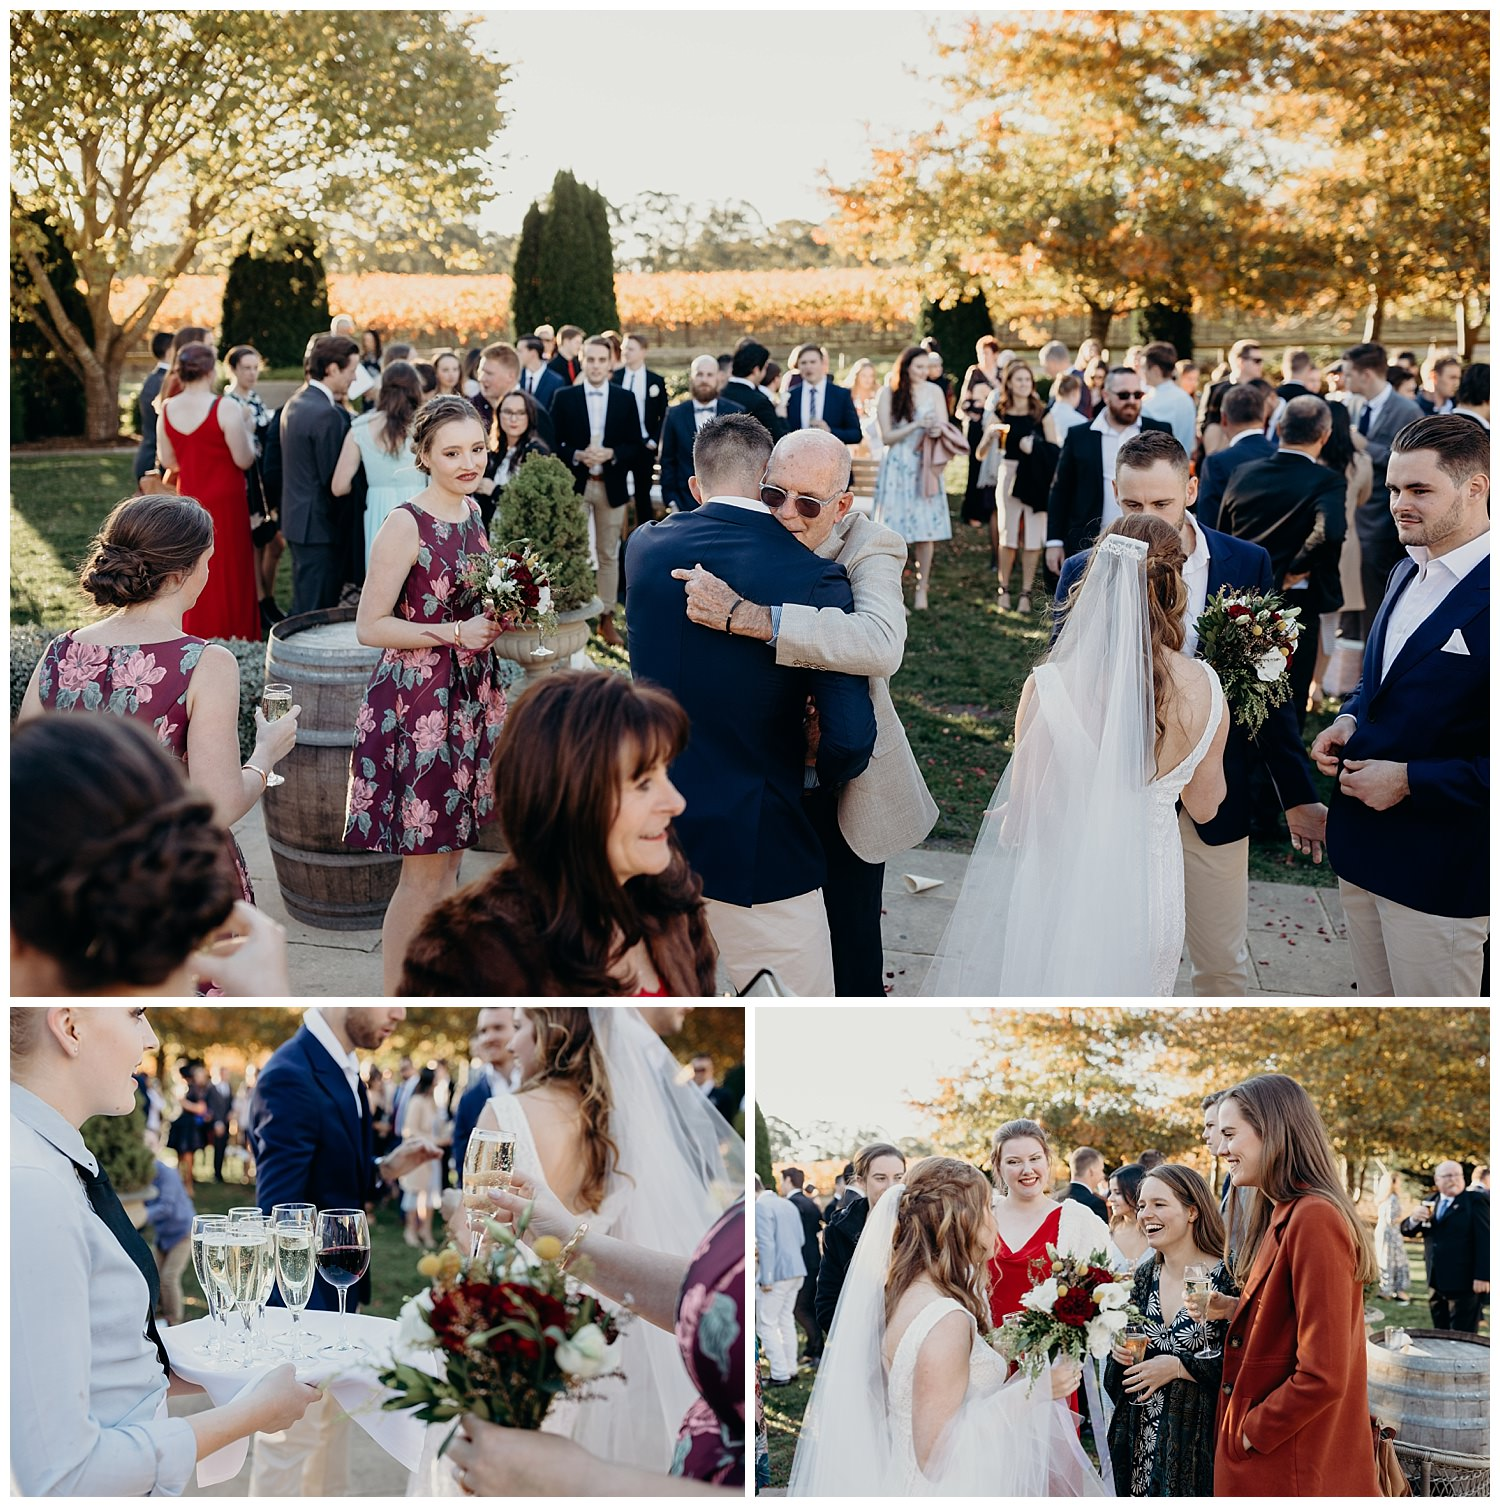 Bowral Southern Highlands Autumn Wedding - Mingling with guests after Centennial Vineyards ceremony